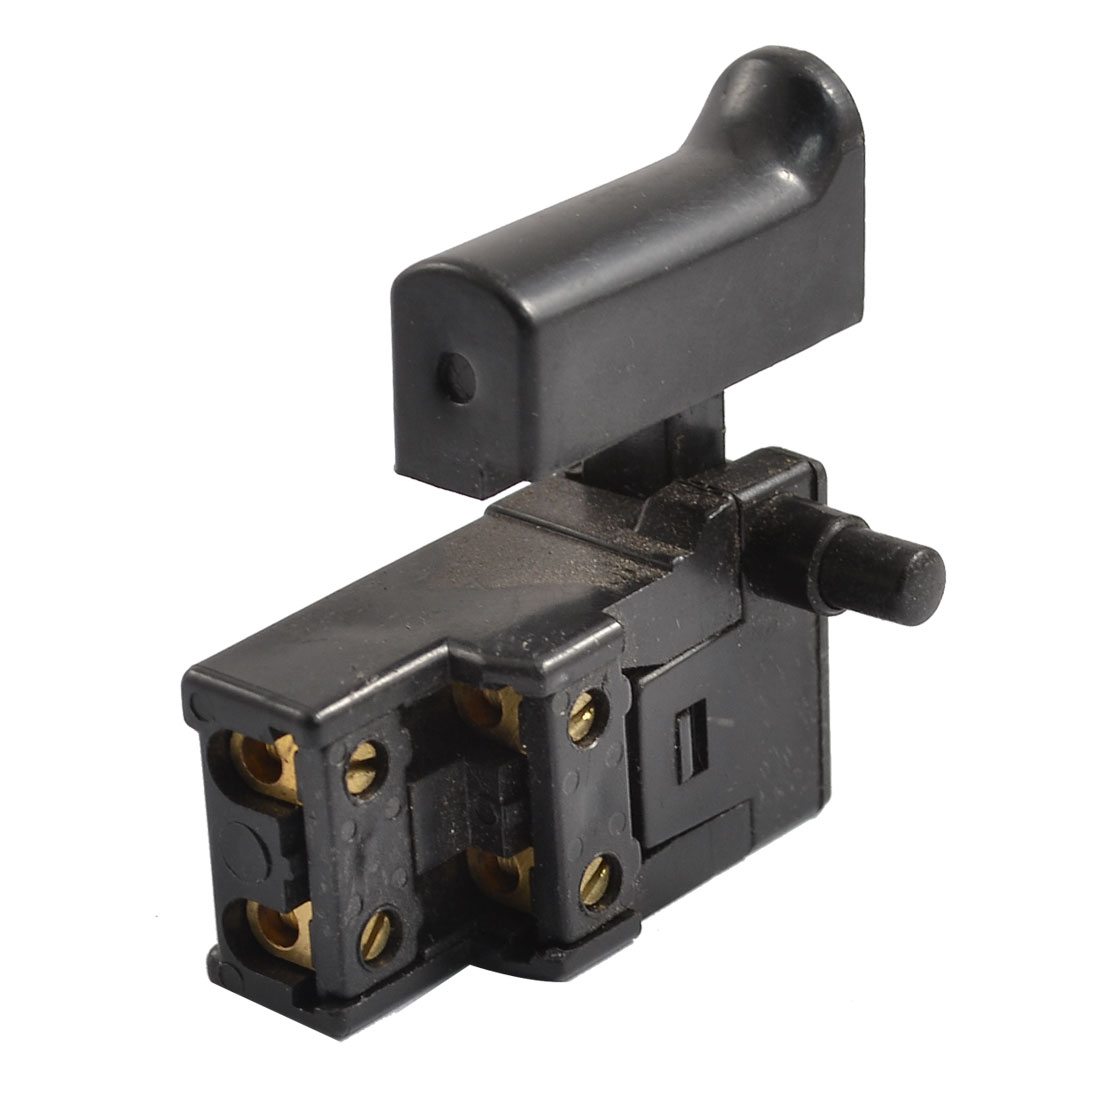 AC 250V 6A SPST Lock on Trigger Switch for Electric Hammer